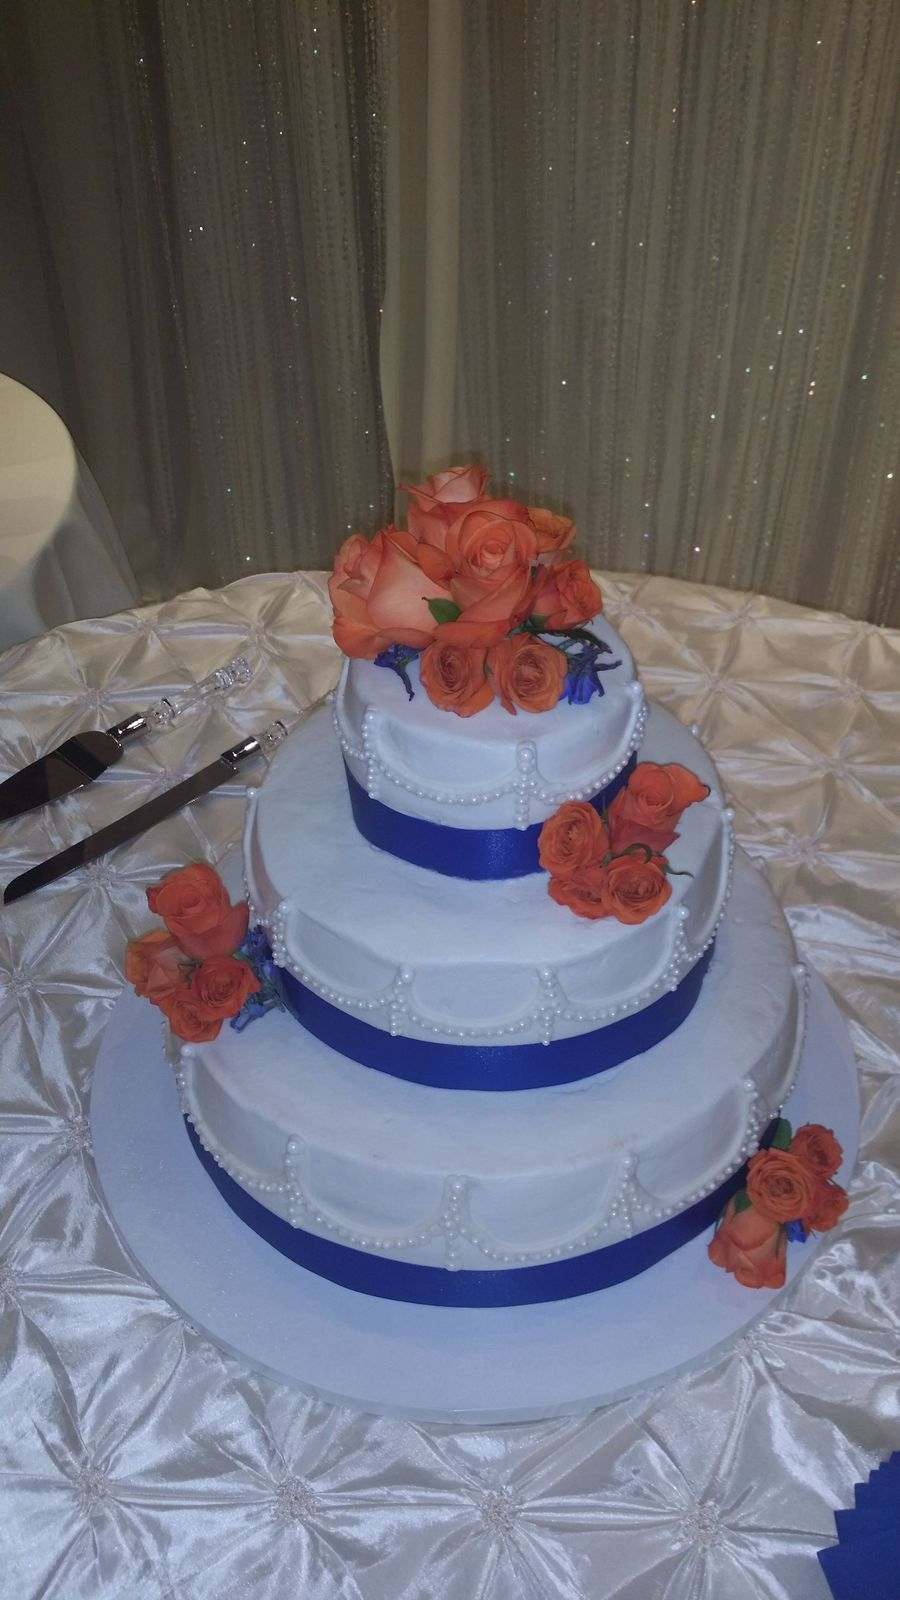 royal blue themed wedding cakes royal blue and orange themed wedding cake was wedding 19368